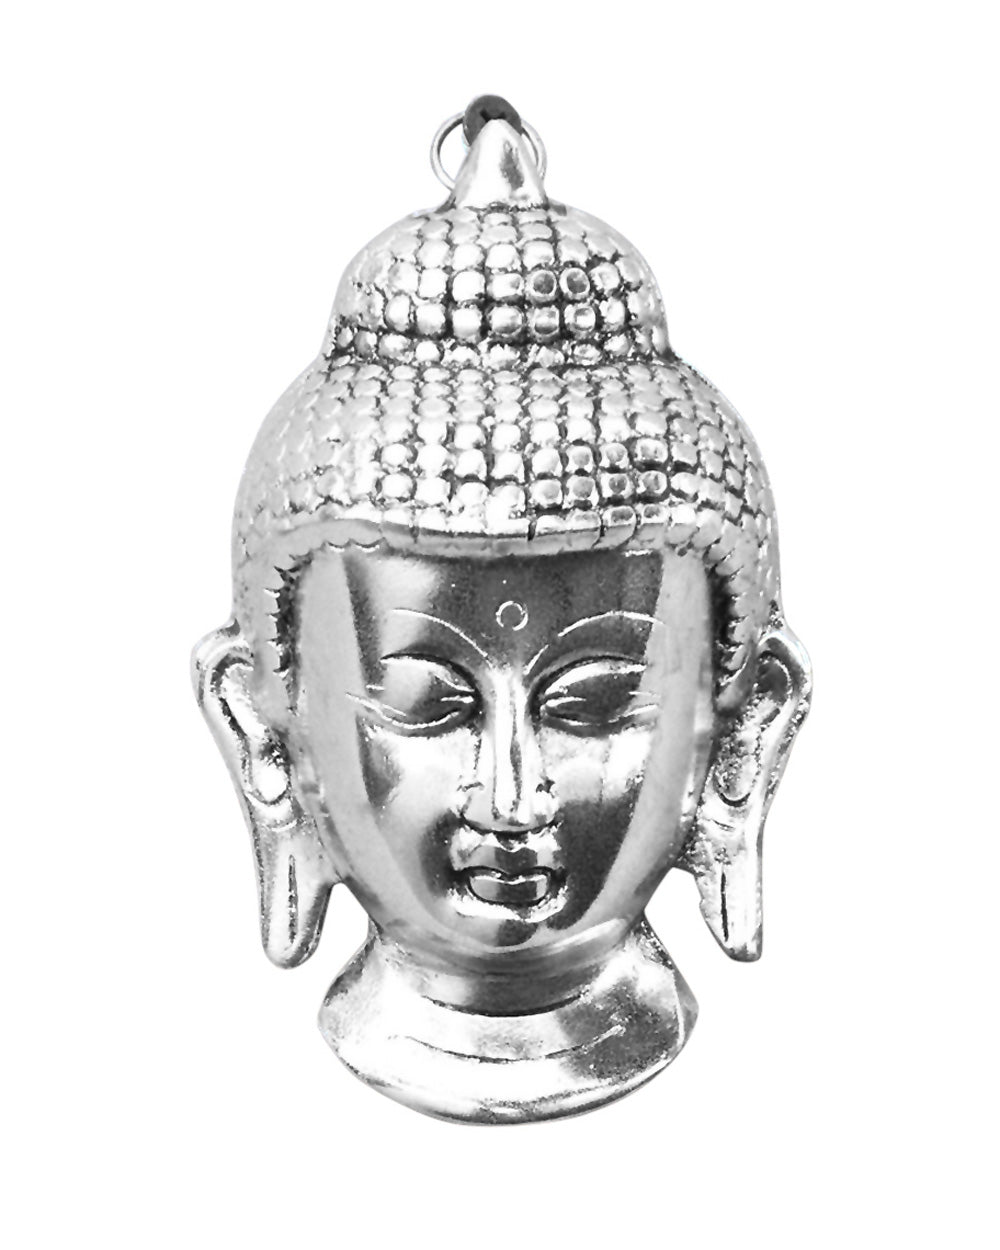 Meditating Buddha Head Silver Wall Art